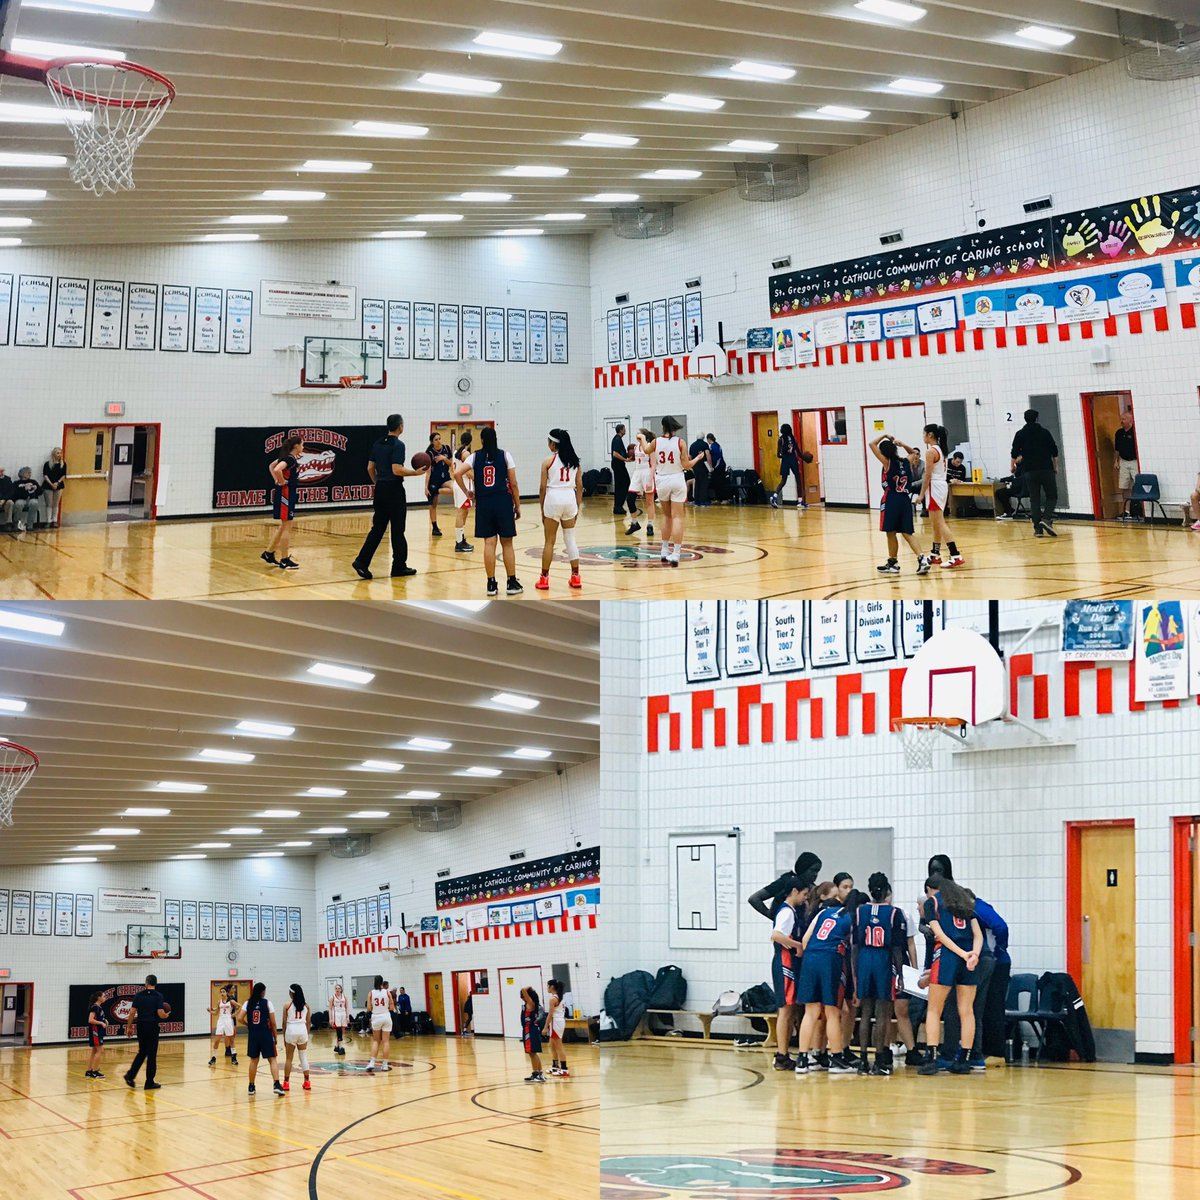 Congratulations to our #seniorgirls and #seniorboys #basketball teams on a wonderful season! You are all still #champions to us! Thank you to our fabulous coaches Mr. Dvorack, Ms. Kelly, Mr. Mateo and Ms. Birkett #gomustangspic.twitter.com/FQAUgV9tH9